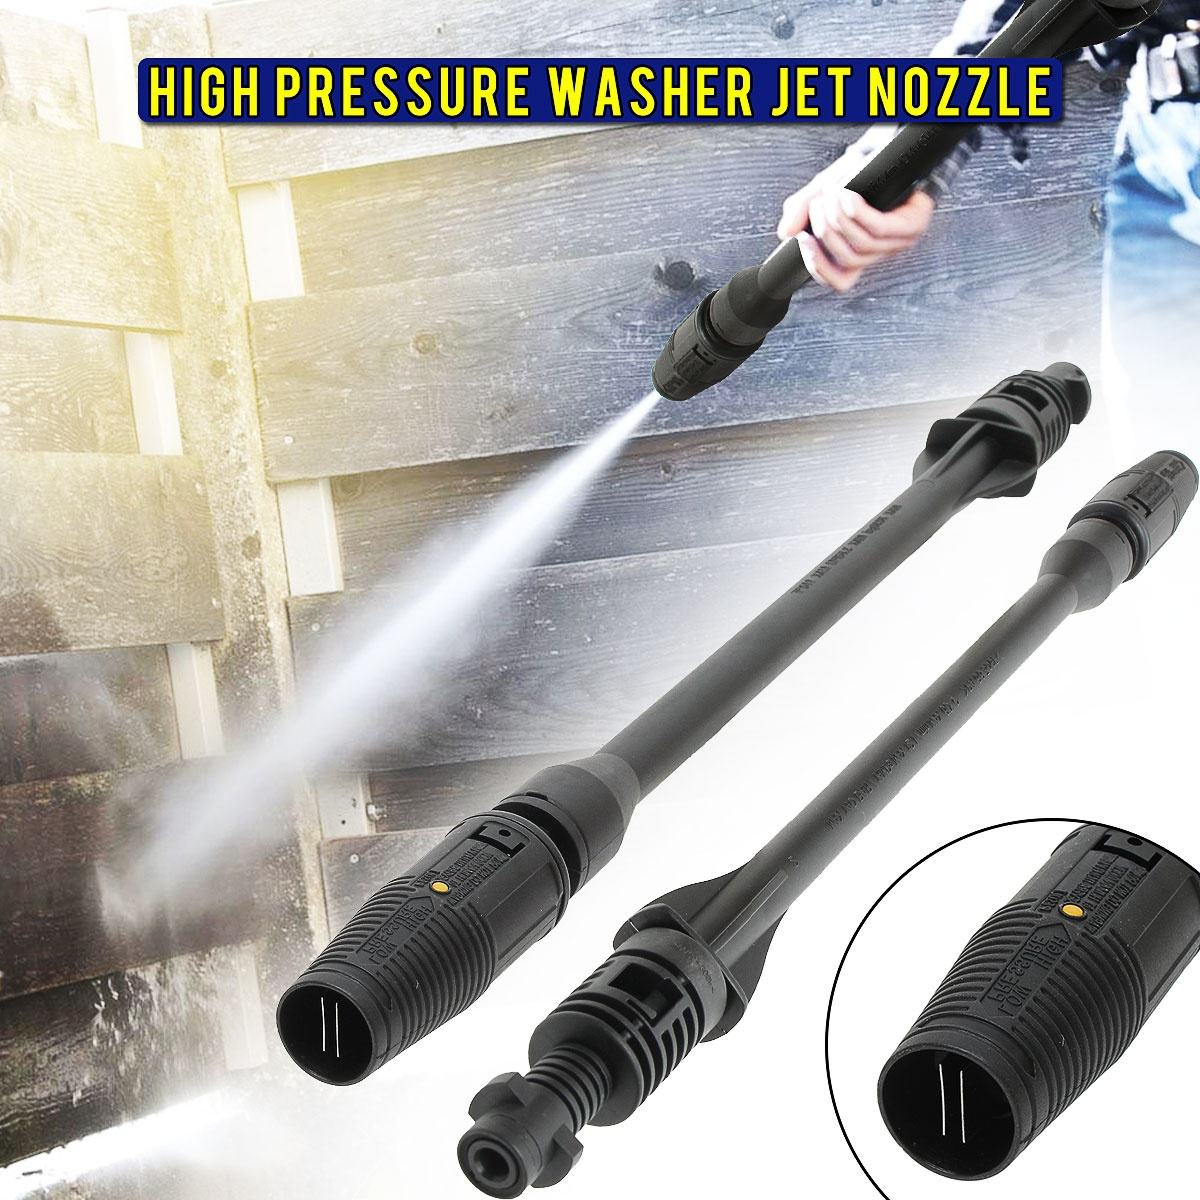 Car Washer Jet Lance Nozzle For K  K1 K2 K3 K4 K5 K6 K7 High/Low Pressure 160bar Car Washing Tools Garden Water Jet Washer